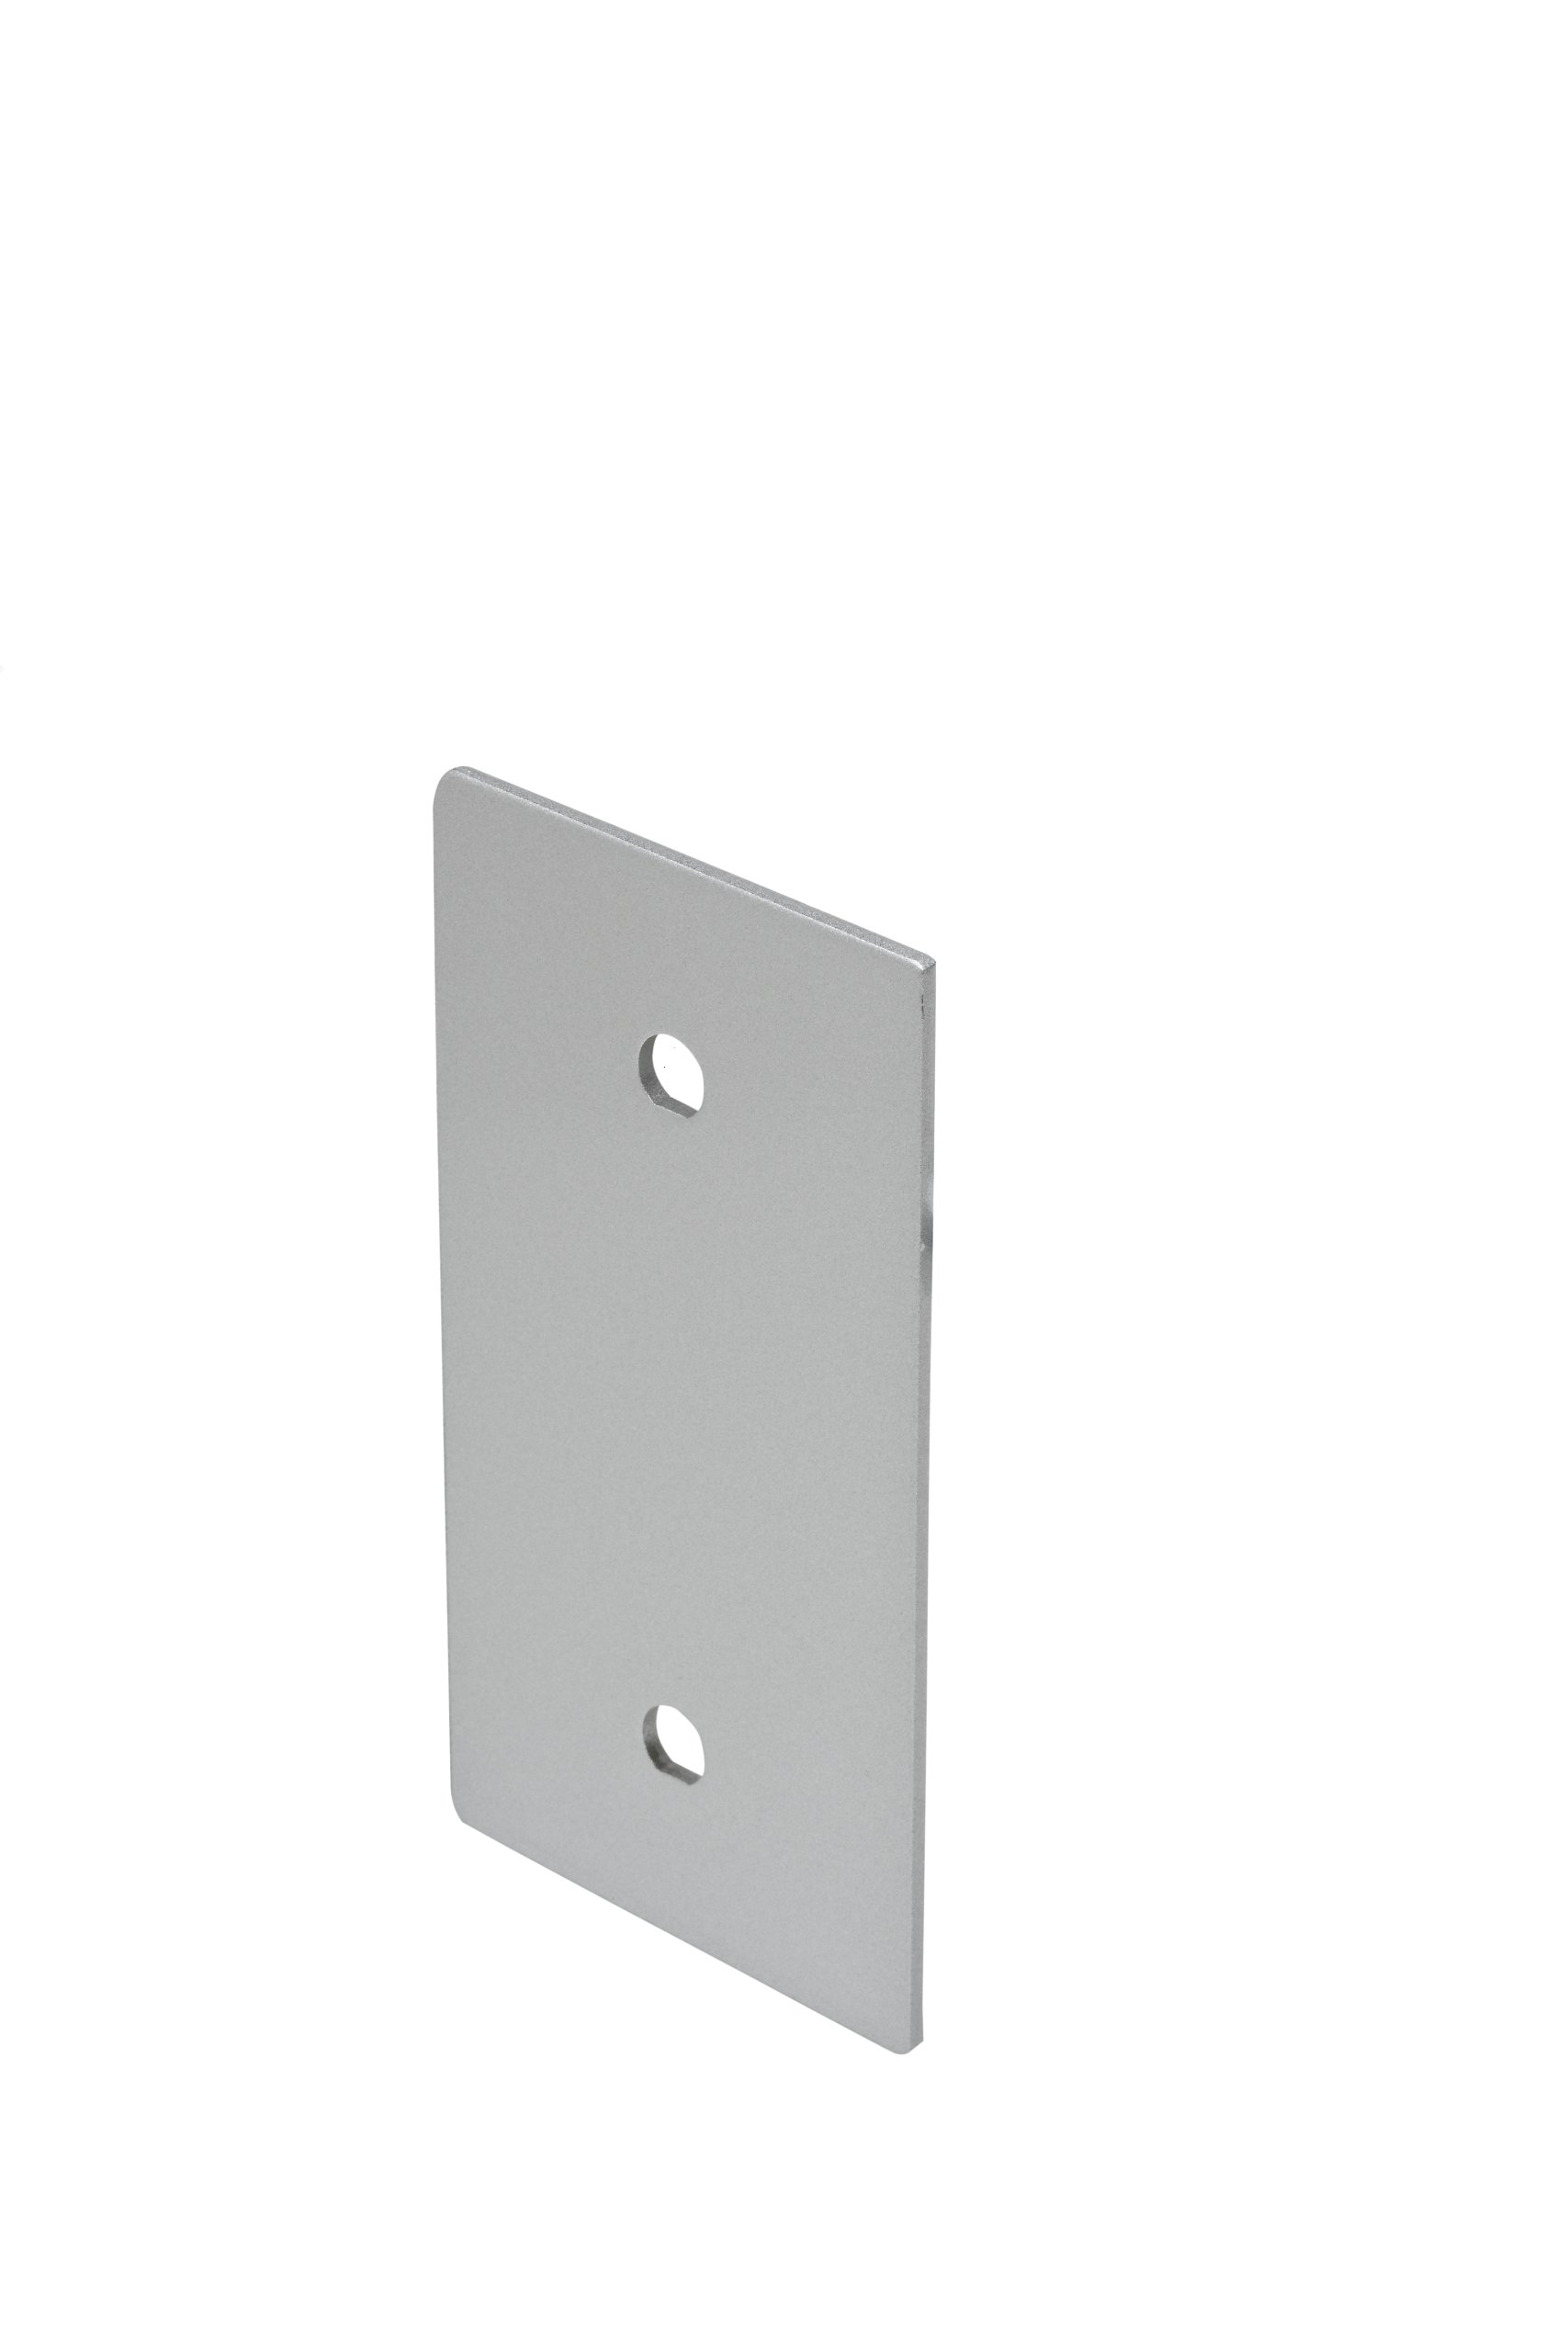 Copper Creek ED-CPLT-AL Exterior Cover Plate for Exit Device Aluminum